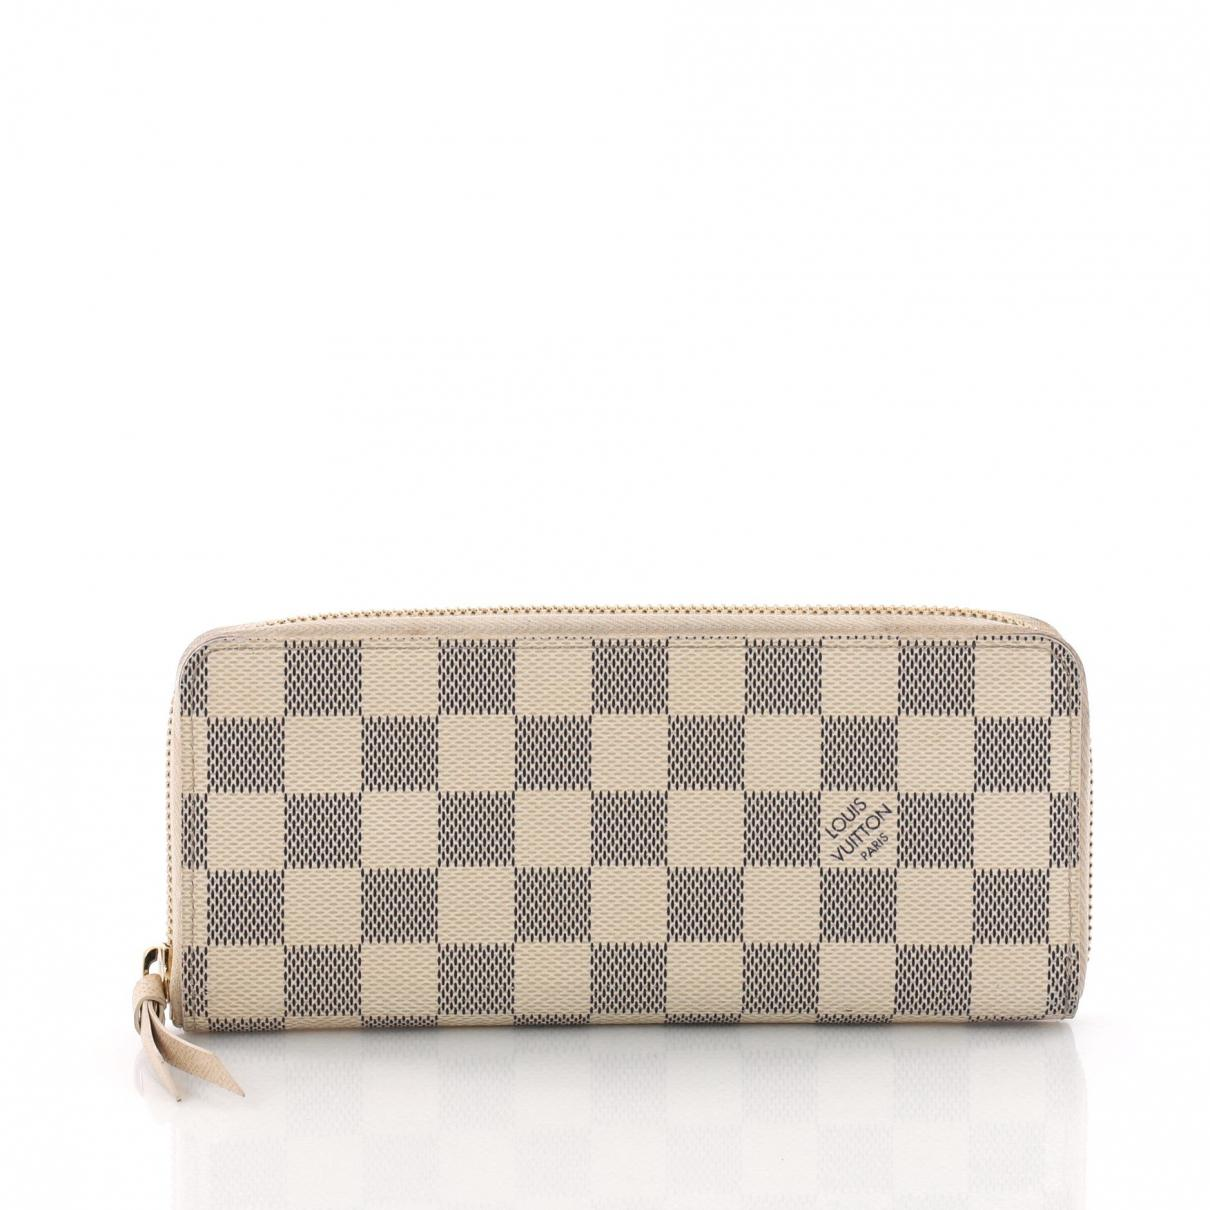 42556ac25cc4e Lyst - Louis Vuitton Clemence Cloth Wallet in White